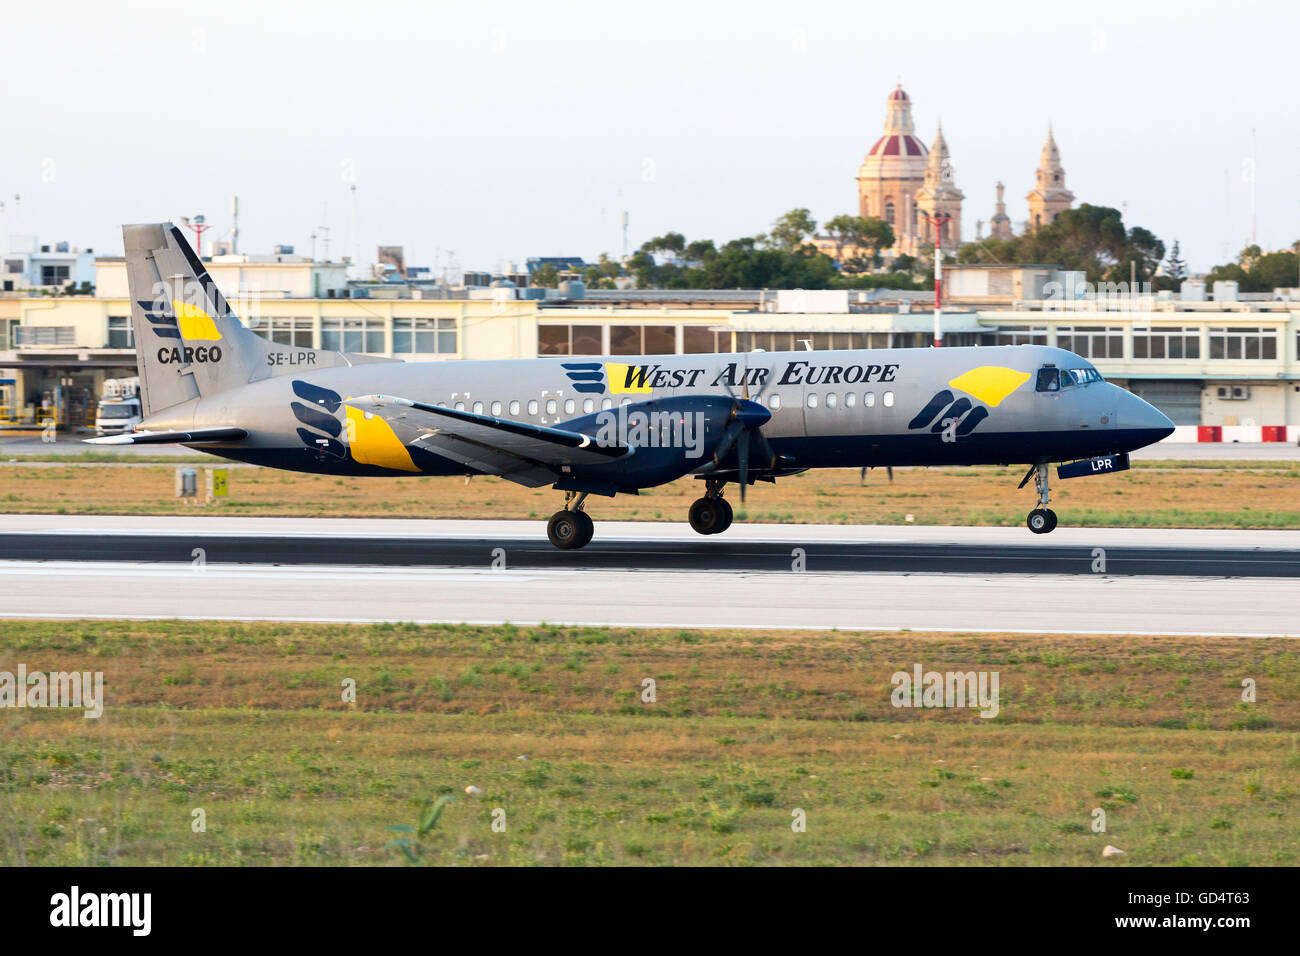 West Air Sweden British Aerospace ATP [SE-LPR] returning back to Malta after a few minutes due to technical problems. - Stock Image